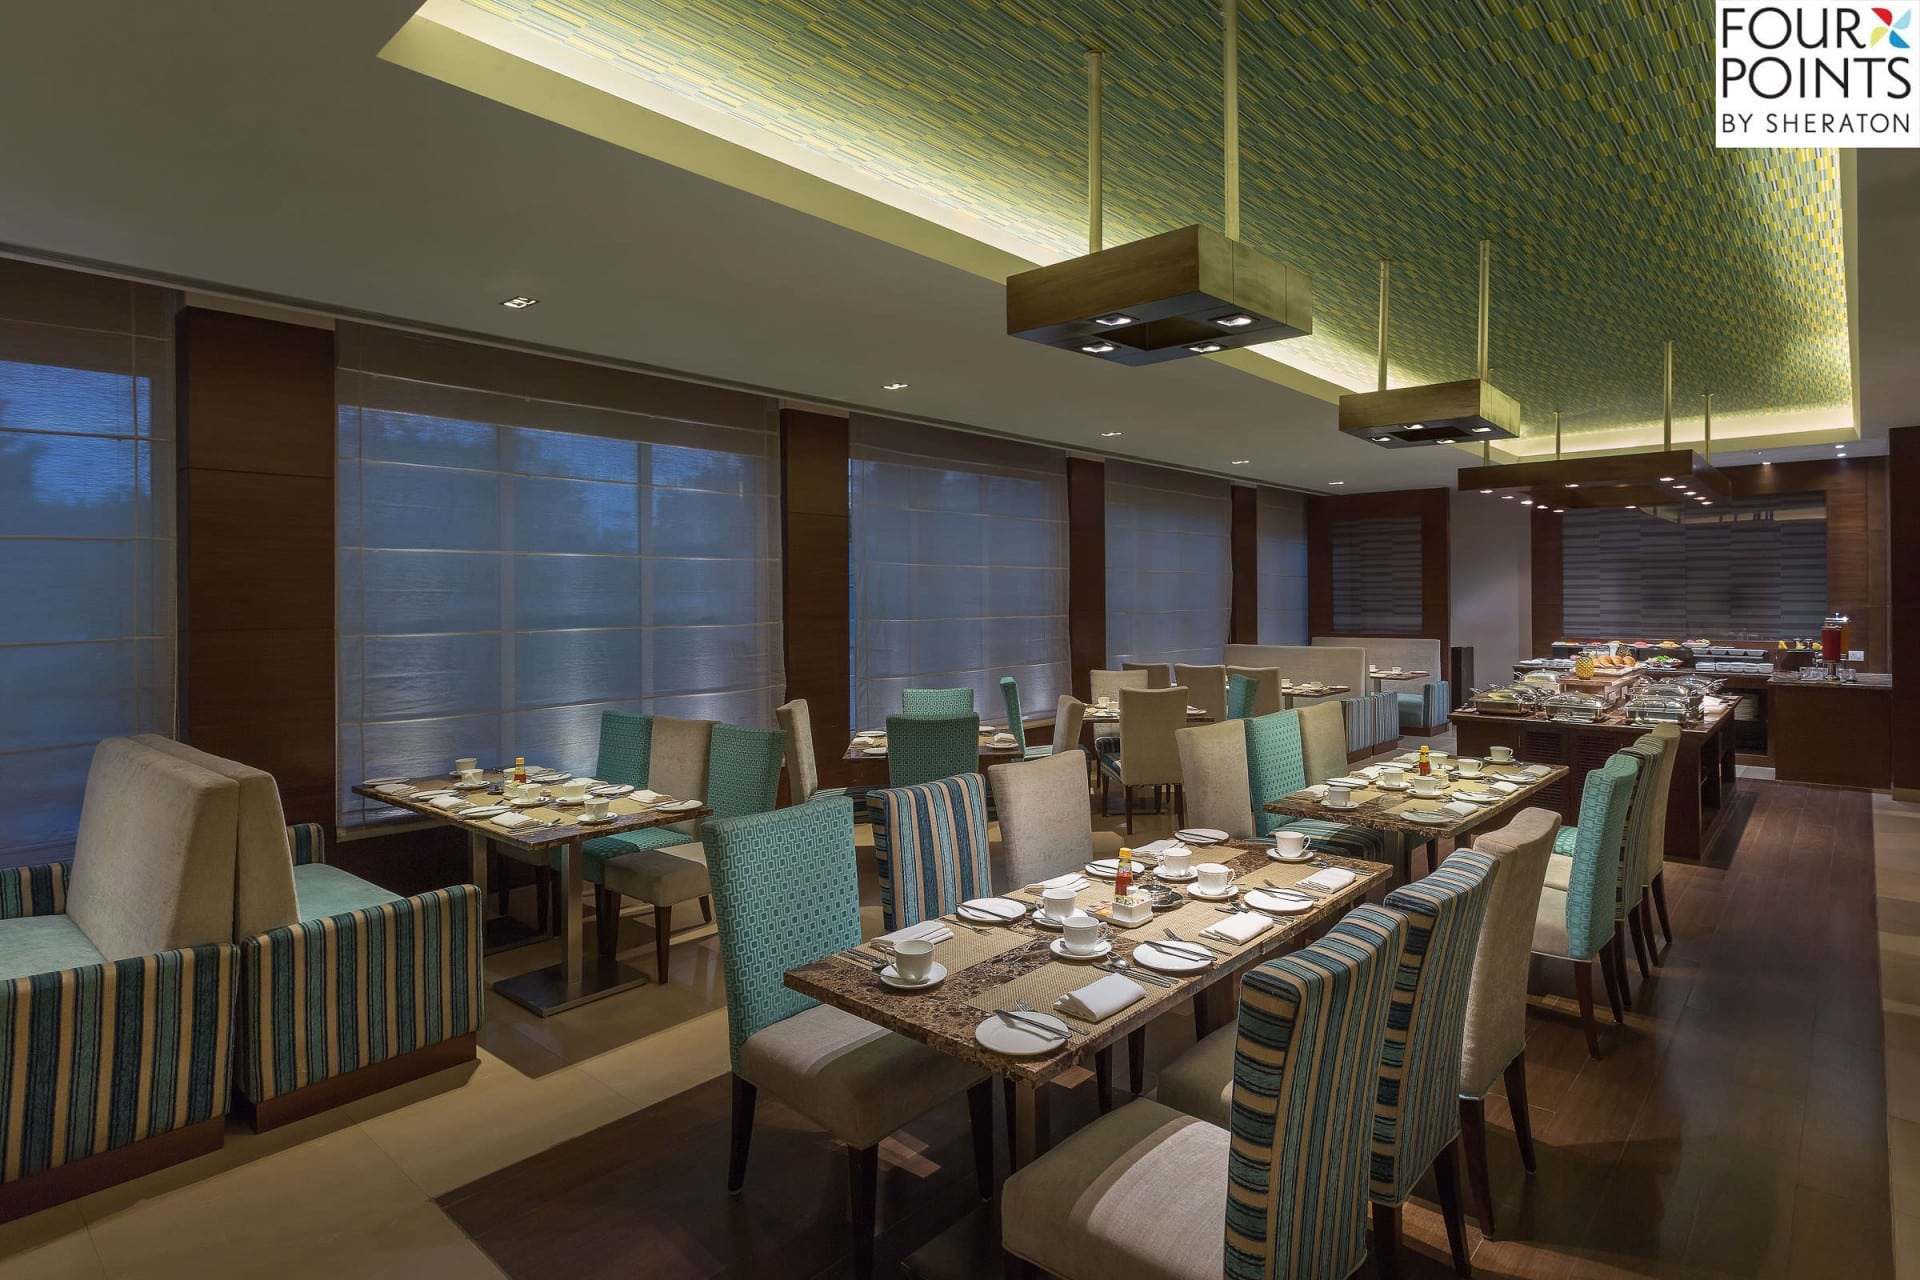 Best Architecture Photographer India   Four Points by Sheraton Vadodara Restaurant Photography